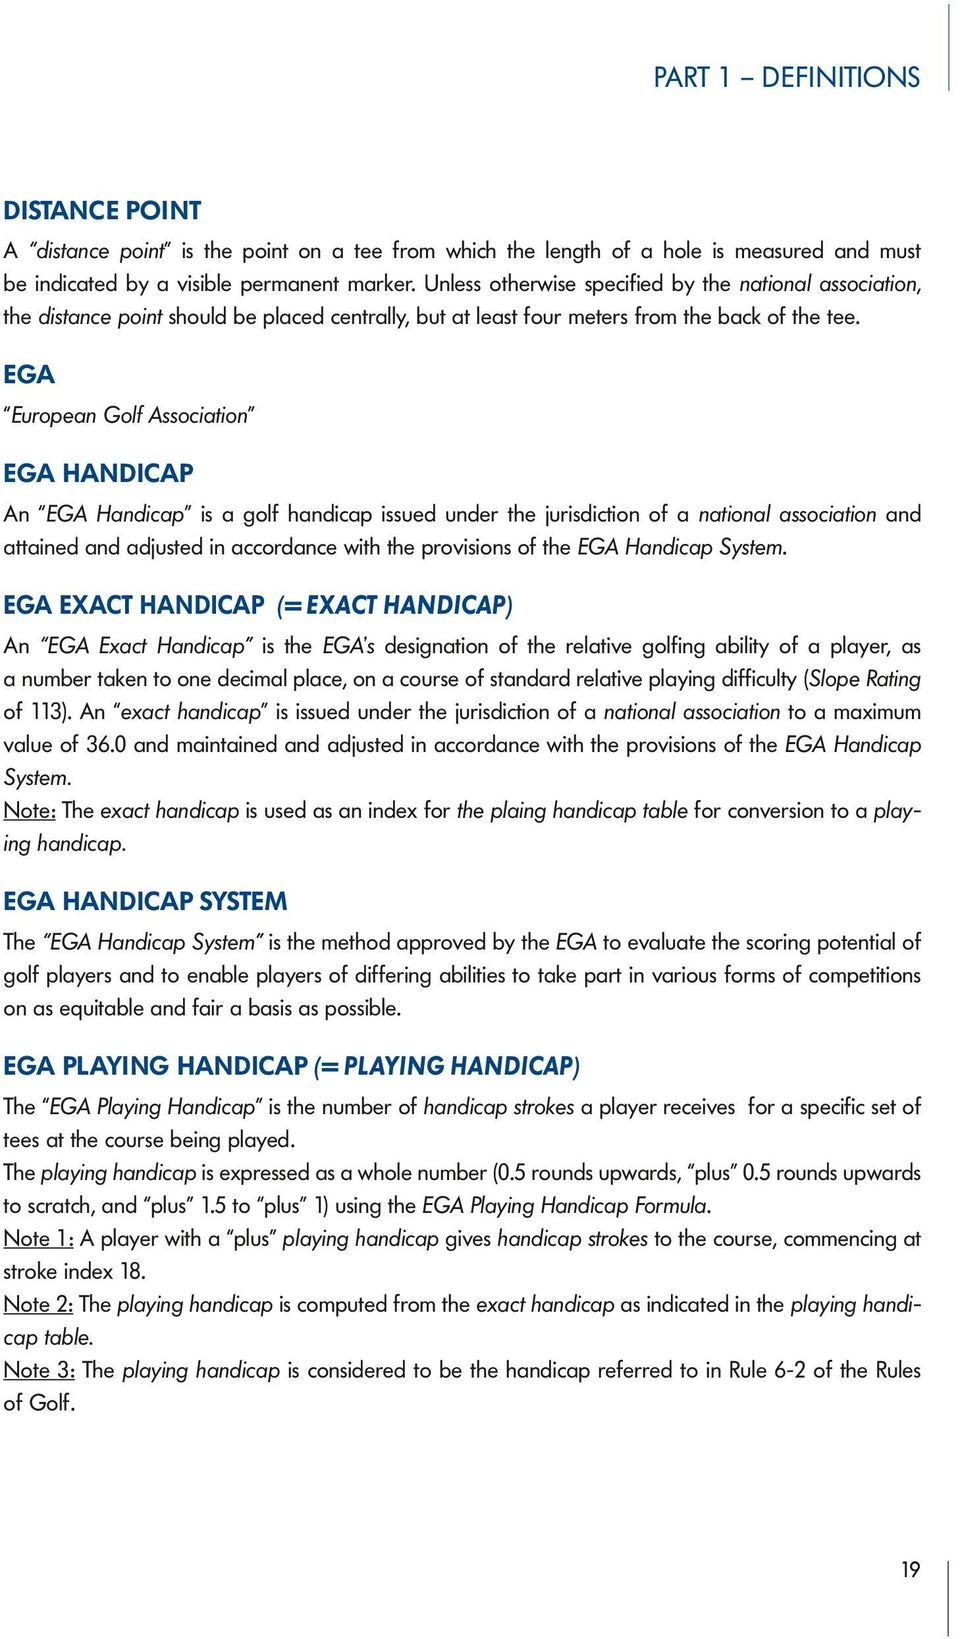 EGA European Golf Association EGA HANDICAP An EGA Handicap is a golf handicap issued under the jurisdiction of a national association and attained and adjusted in accordance with the provisions of